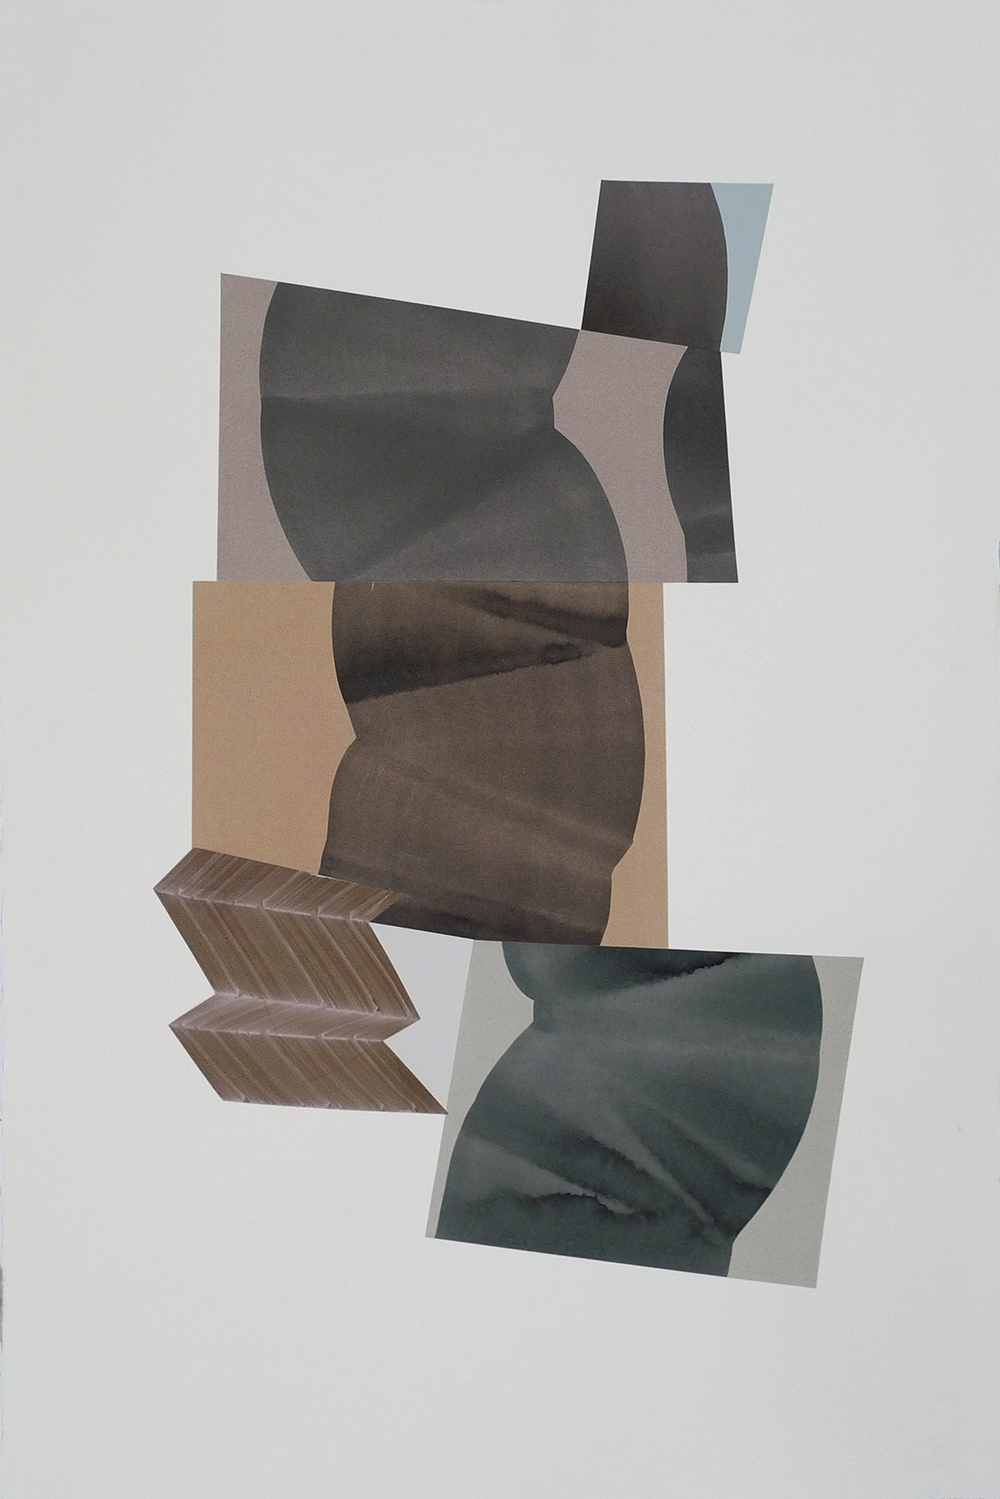 "Simone Rochon,  Ombres souples no. 3 , 2017, collage, encre acrylique sur papier Waterford, 40"" x 26"" (102 x 66 cm)."